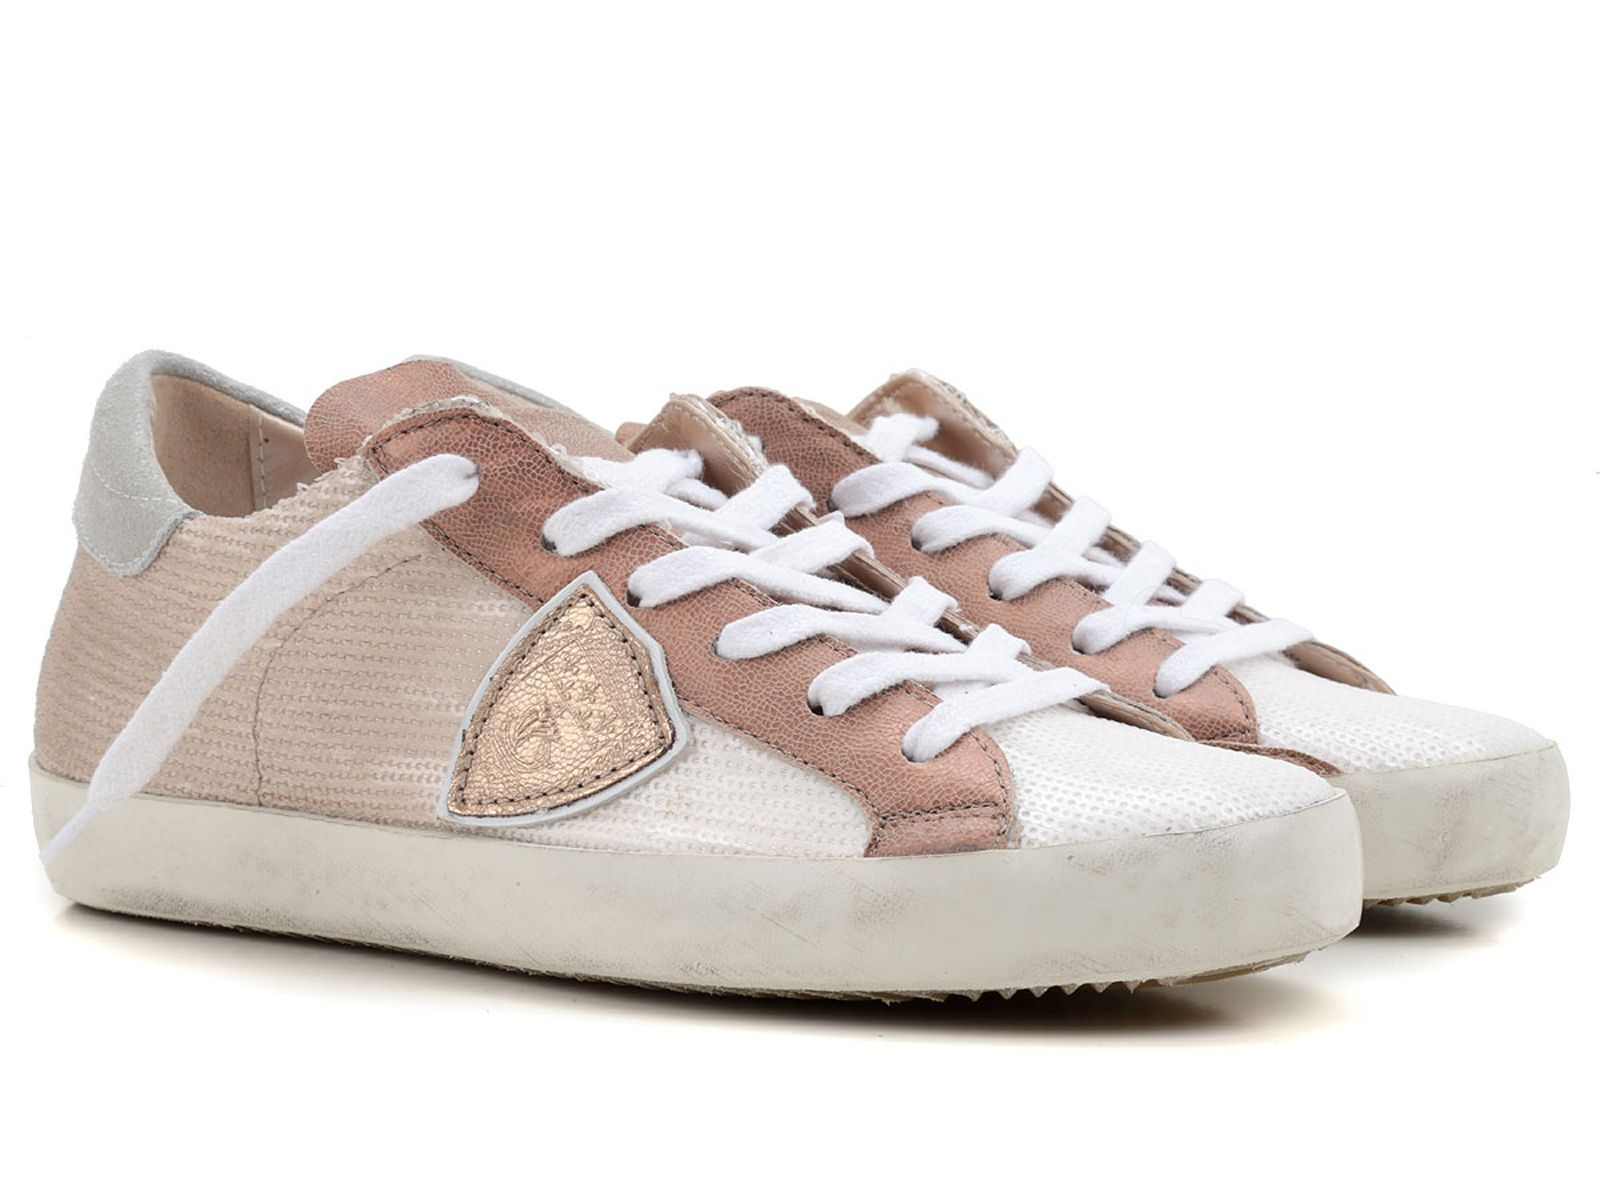 Sneakers for Women On Sale in Outlet, Cream, Leather, 2017, 3.5 Philippe Model